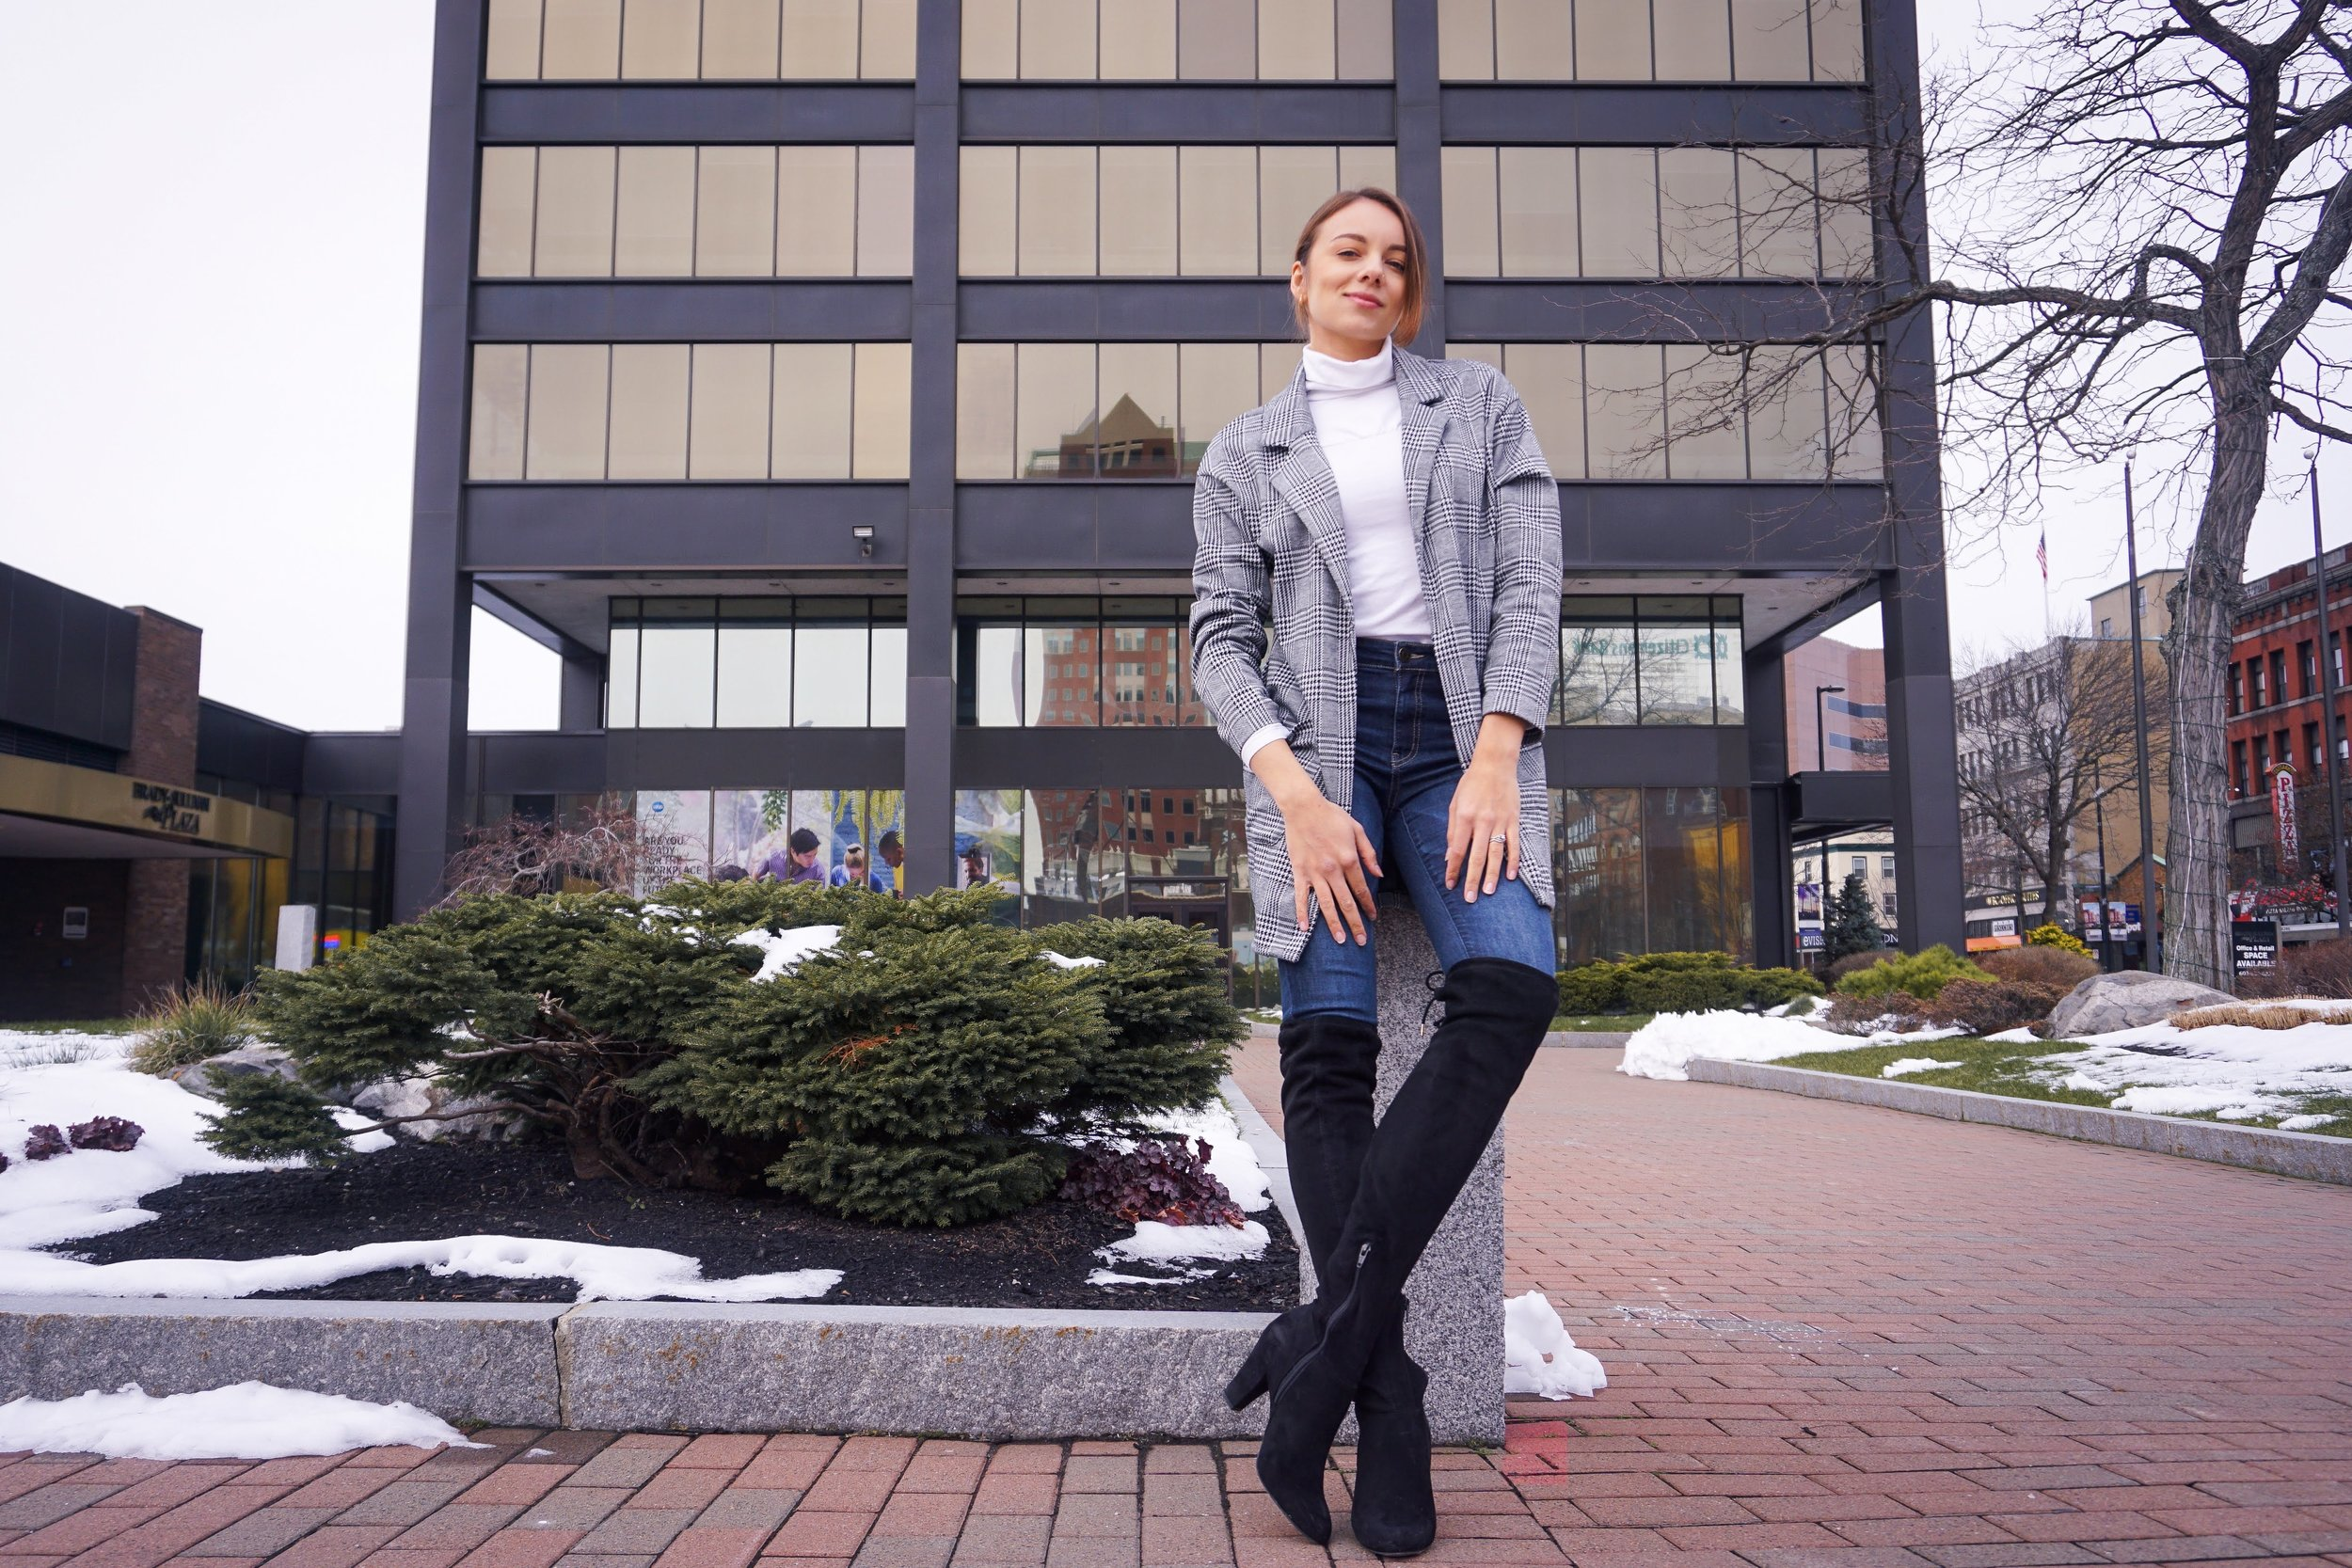 Fashion blogger posing near a glass building wearing a houndstooth blazer, white turtleneck, dark denim jeans, and black over-the-knee boots.